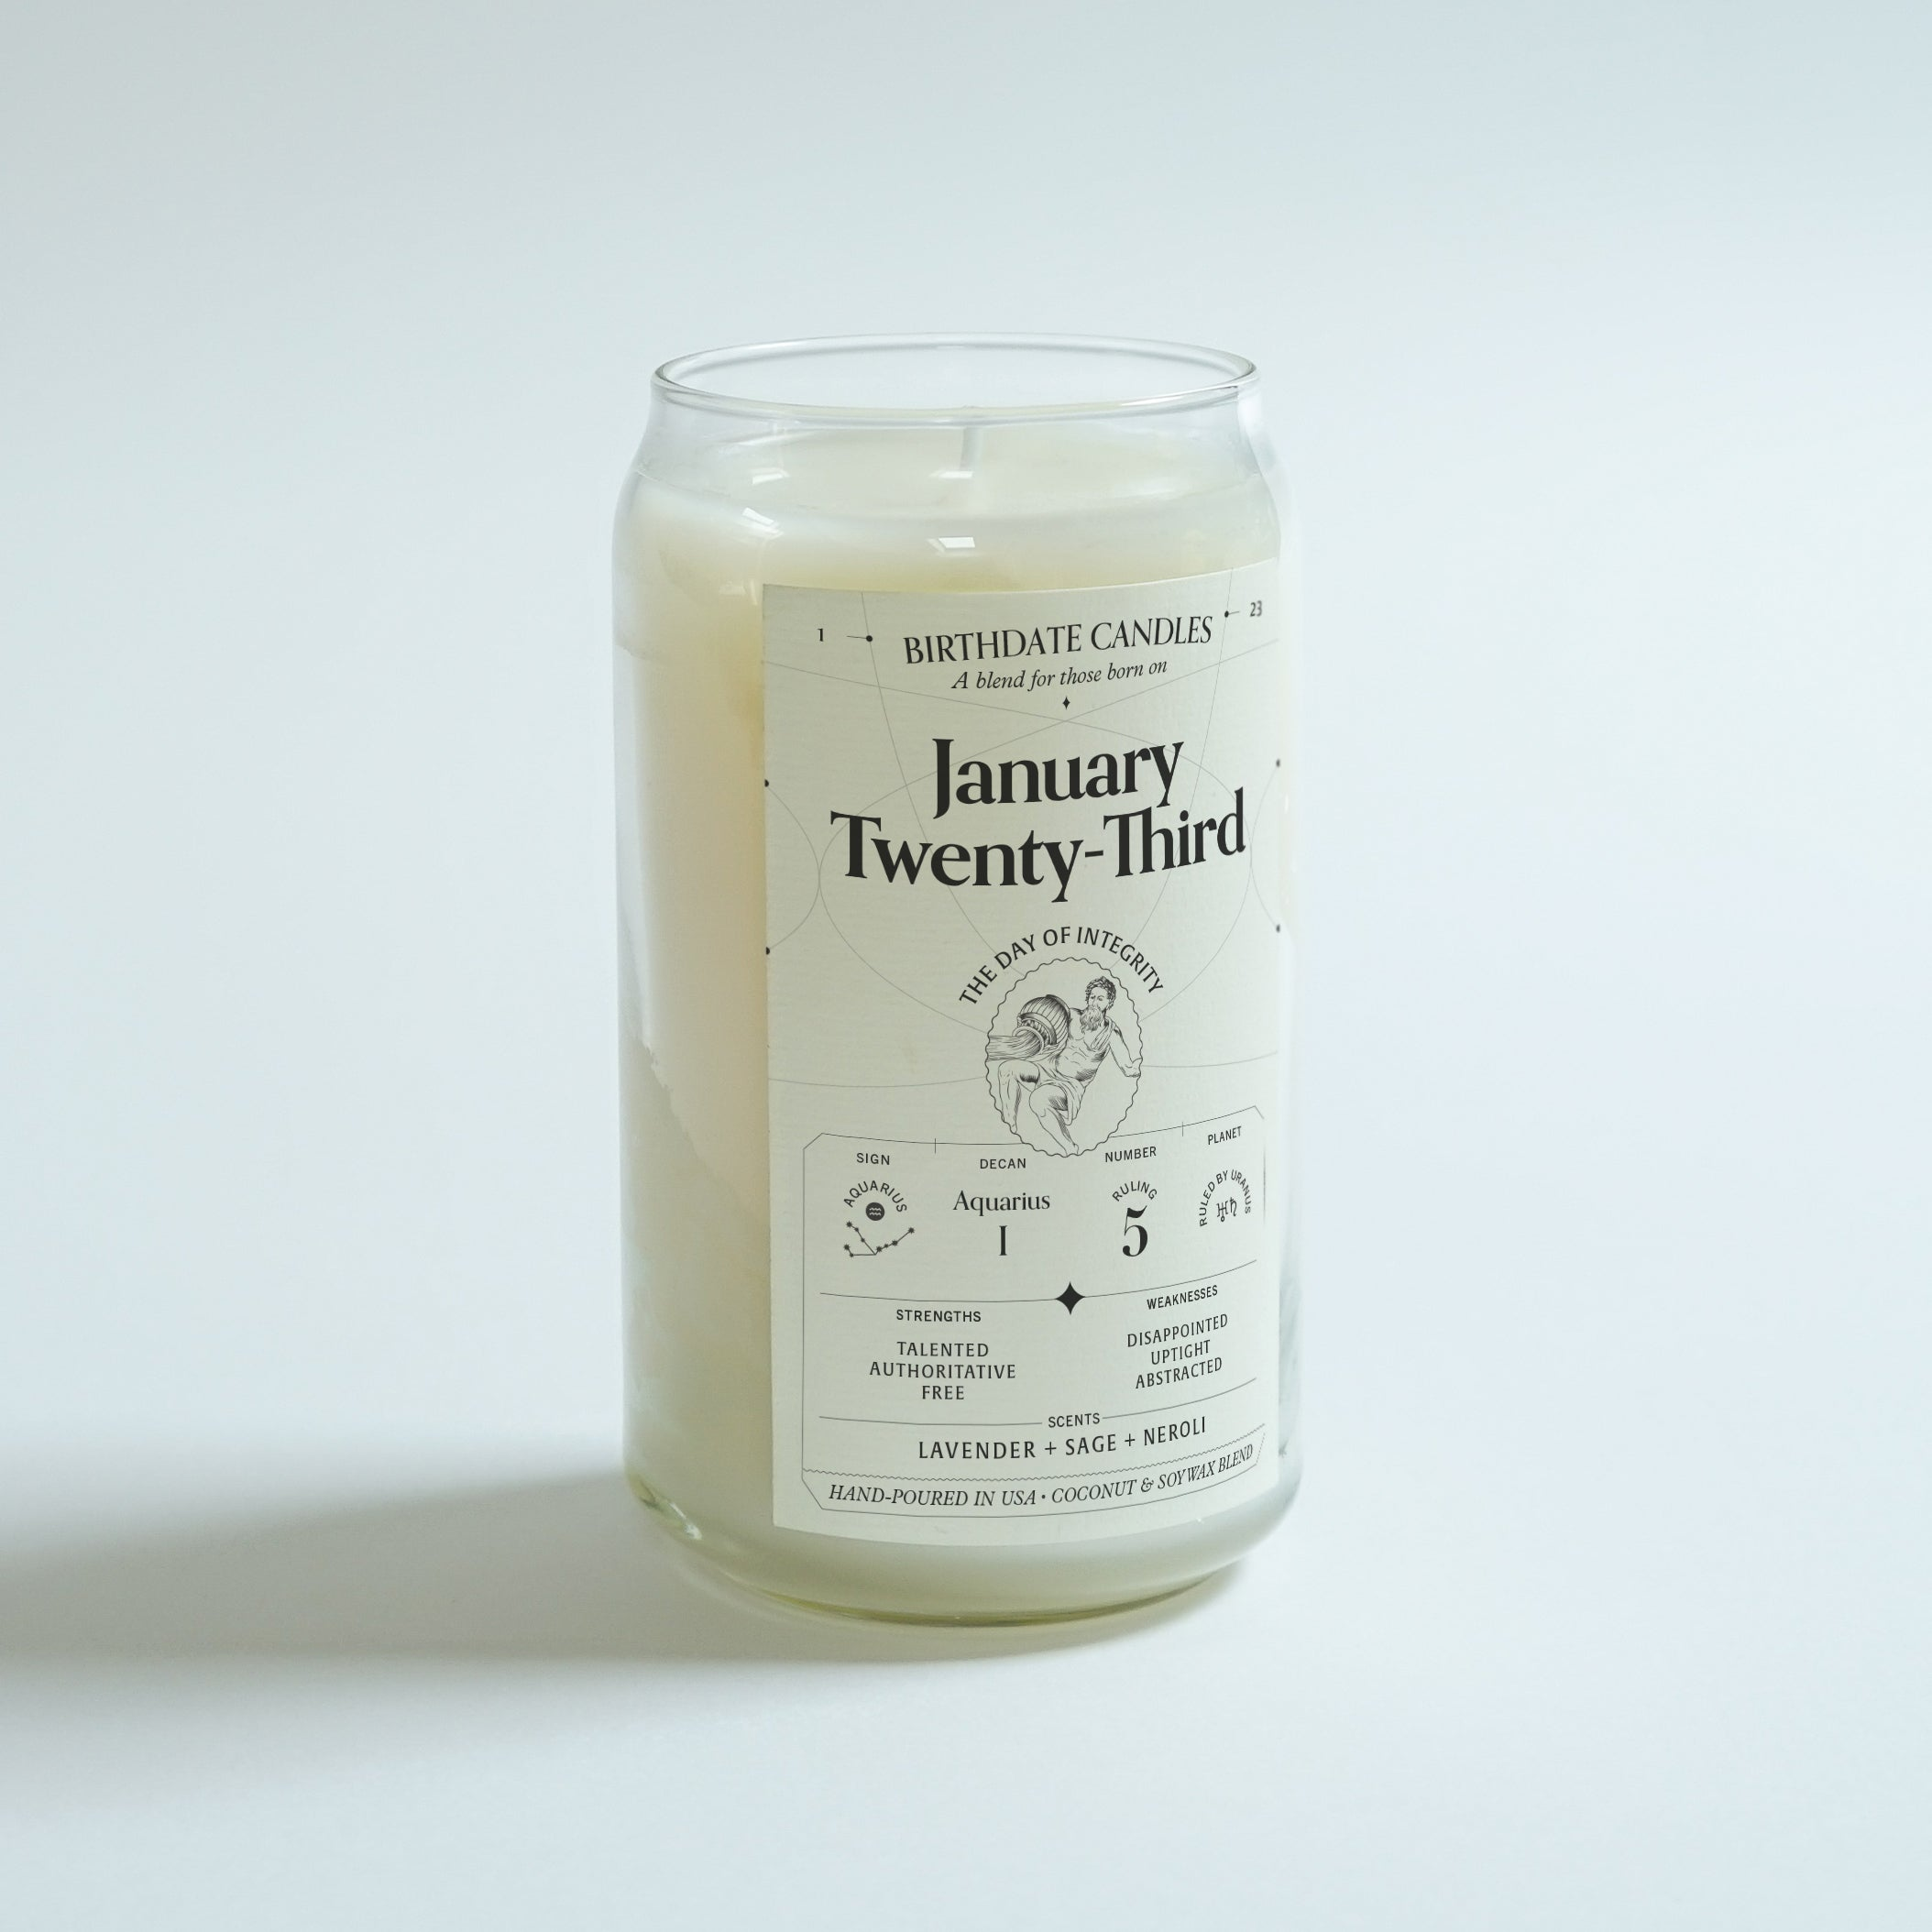 The January Twenty-Third Candle